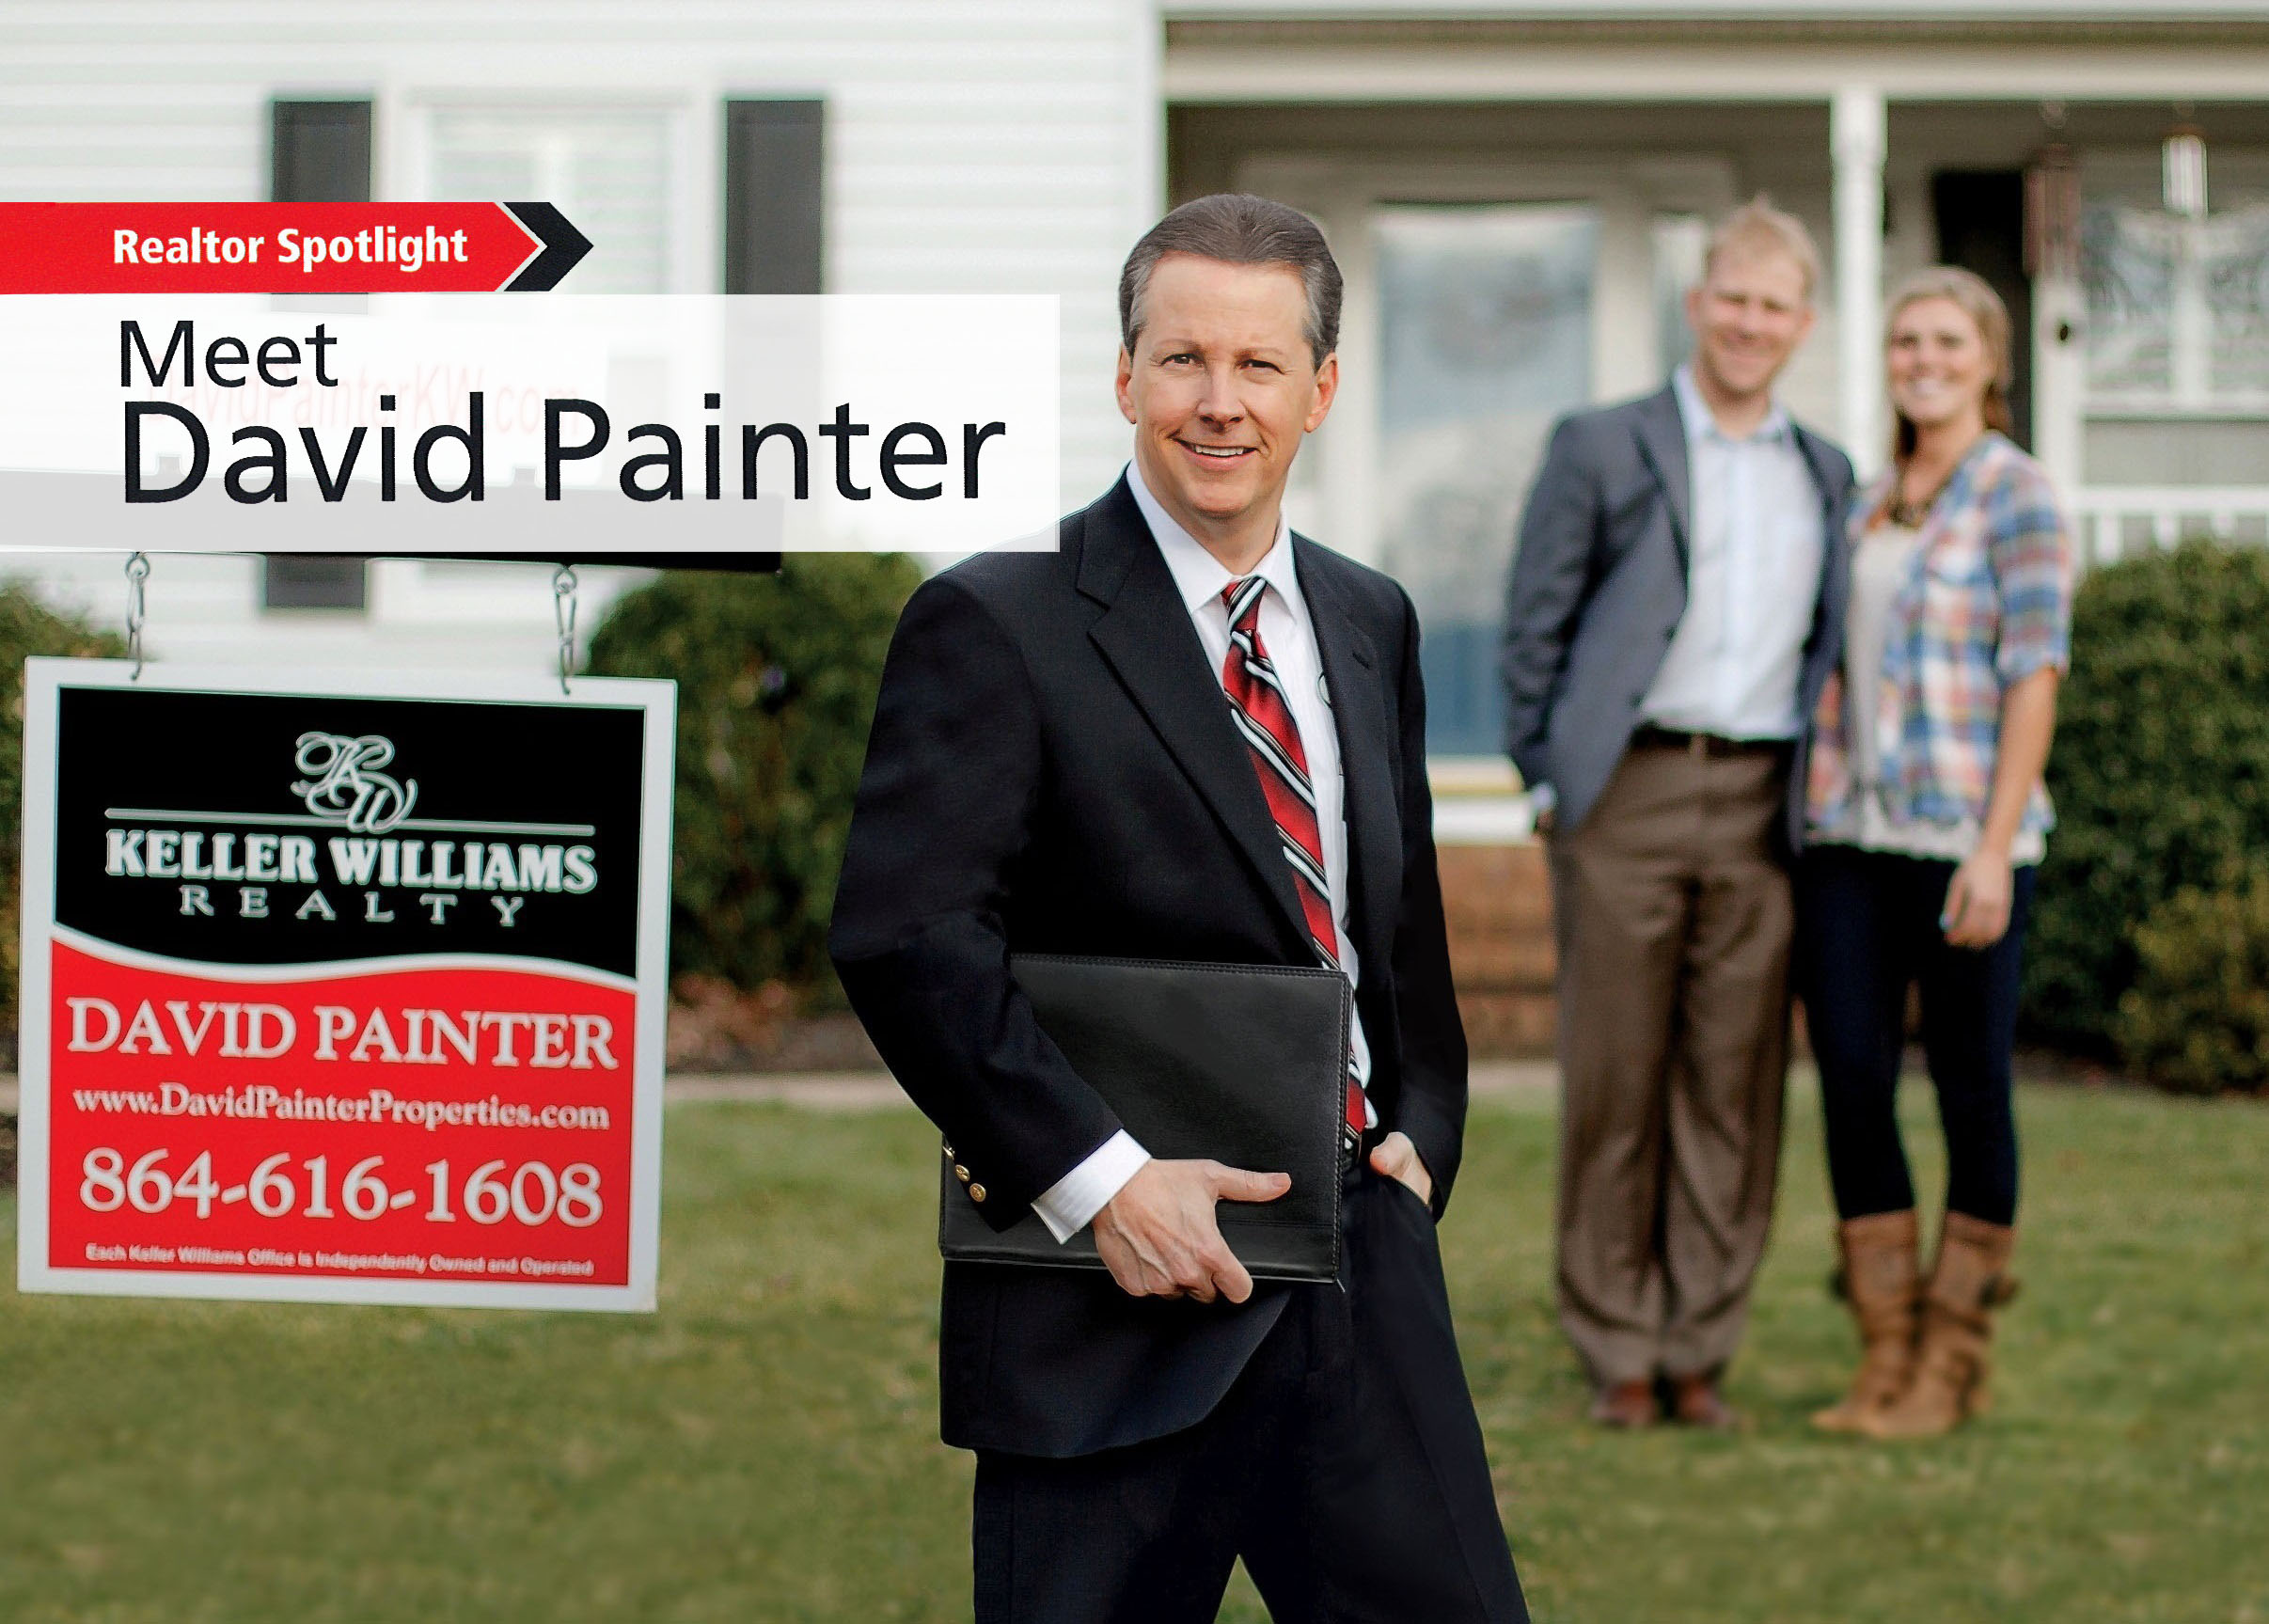 David Painter Agent Spotlight